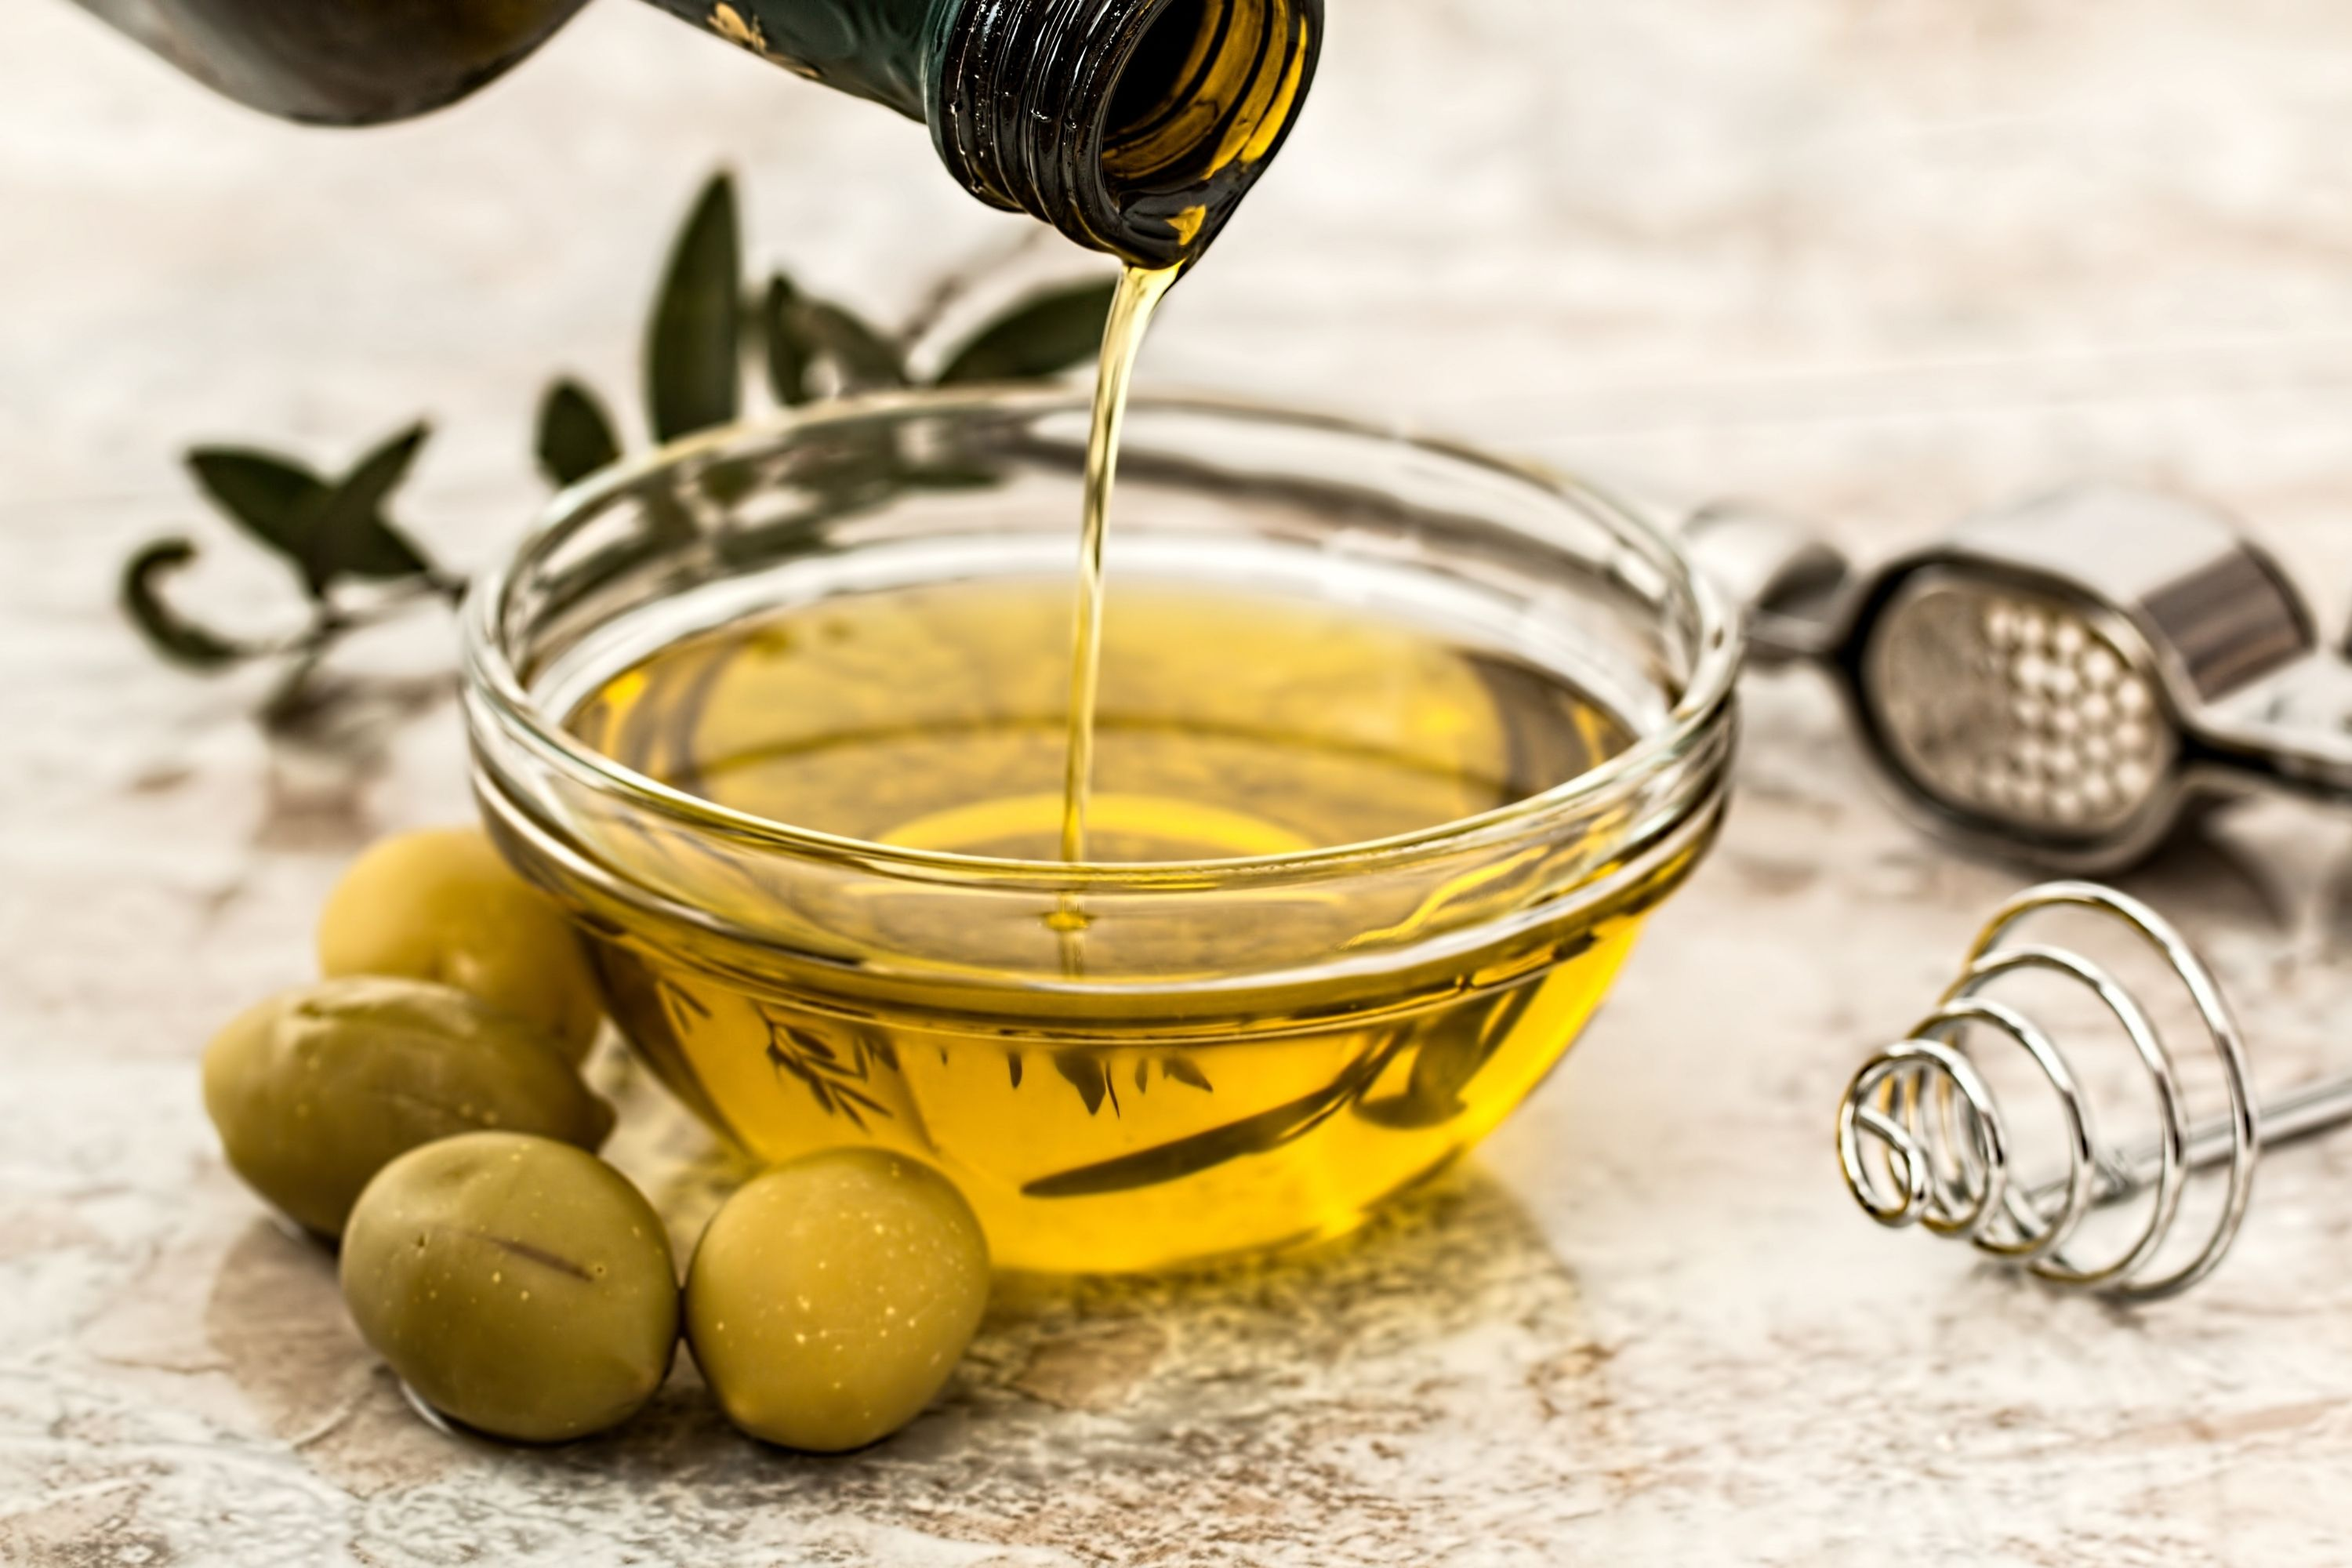 Get a Fat Free Body 8 Foods That Can Burn Fat Faster Than any Diets olive oil